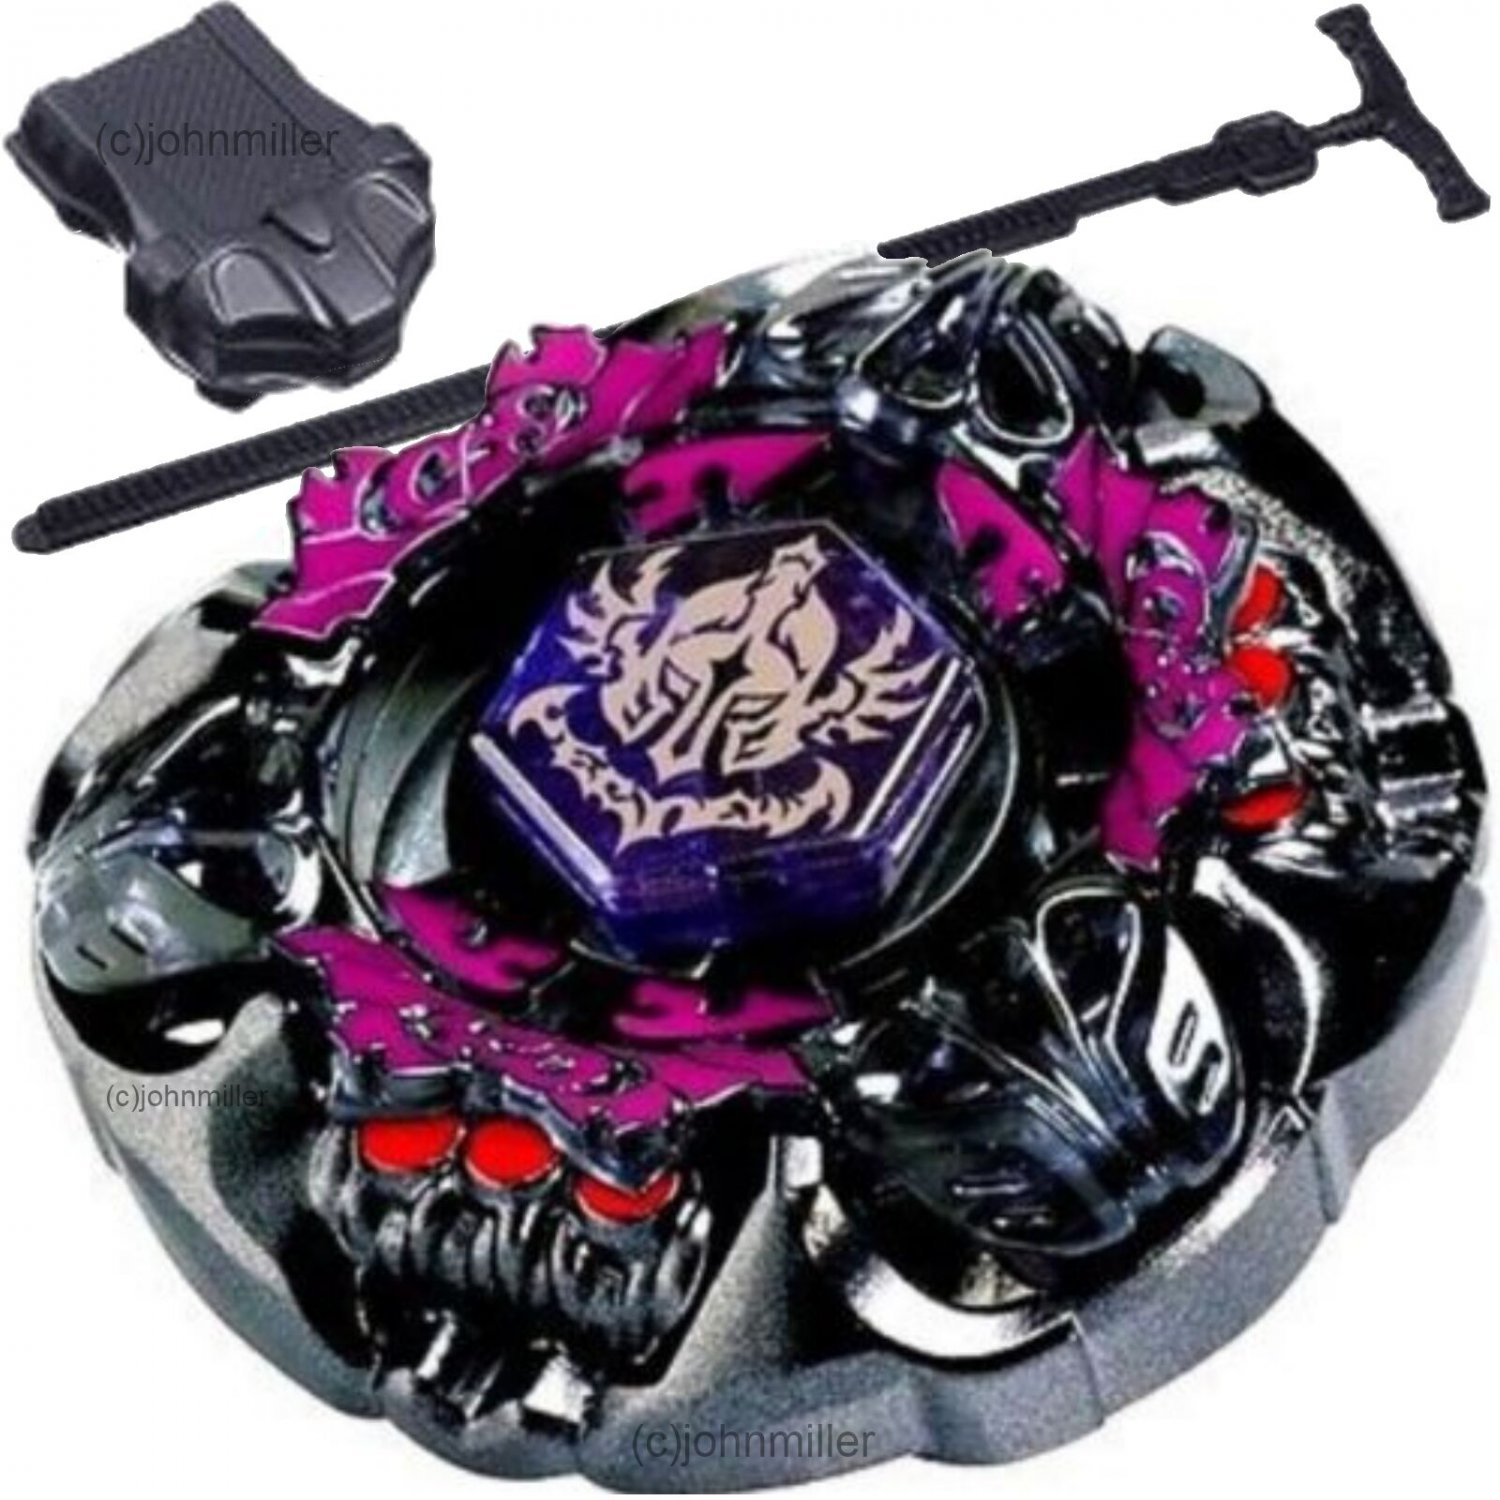 GRAVITY DESTROYER / PERSEUS AD145WD USA Beyblade STARTER SET w/ Launcher & Ripcord!